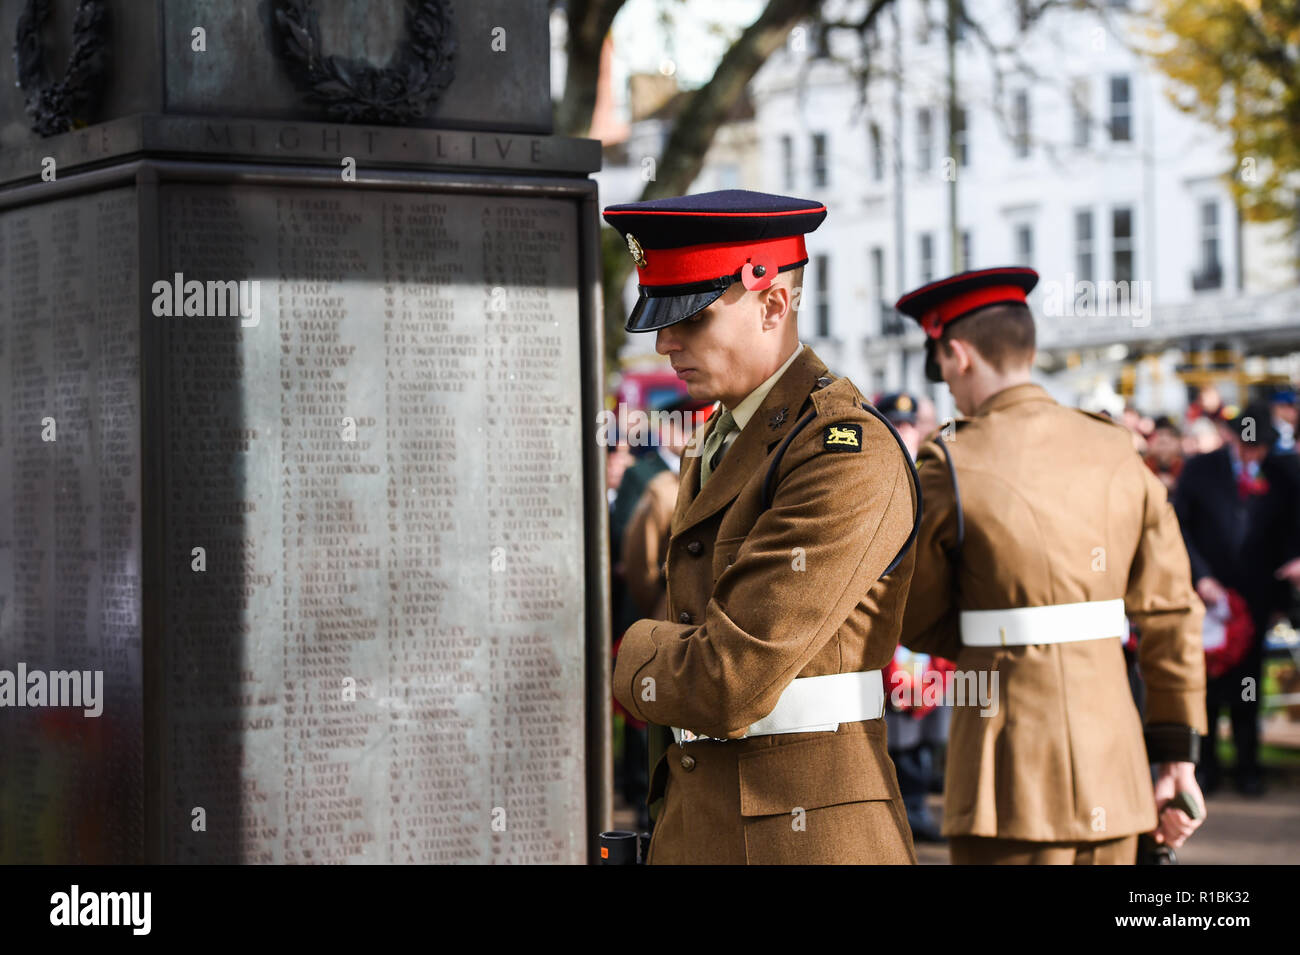 Brighton UK 11th November 2018 - The Act of Remembrance Service held at Brighton war memorial . It is the 100 year anniversary today of the ending of World War One on the 11th November 1918 . Photograph taken by Simon Dack Credit: Simon Dack/Alamy Live News - Stock Image